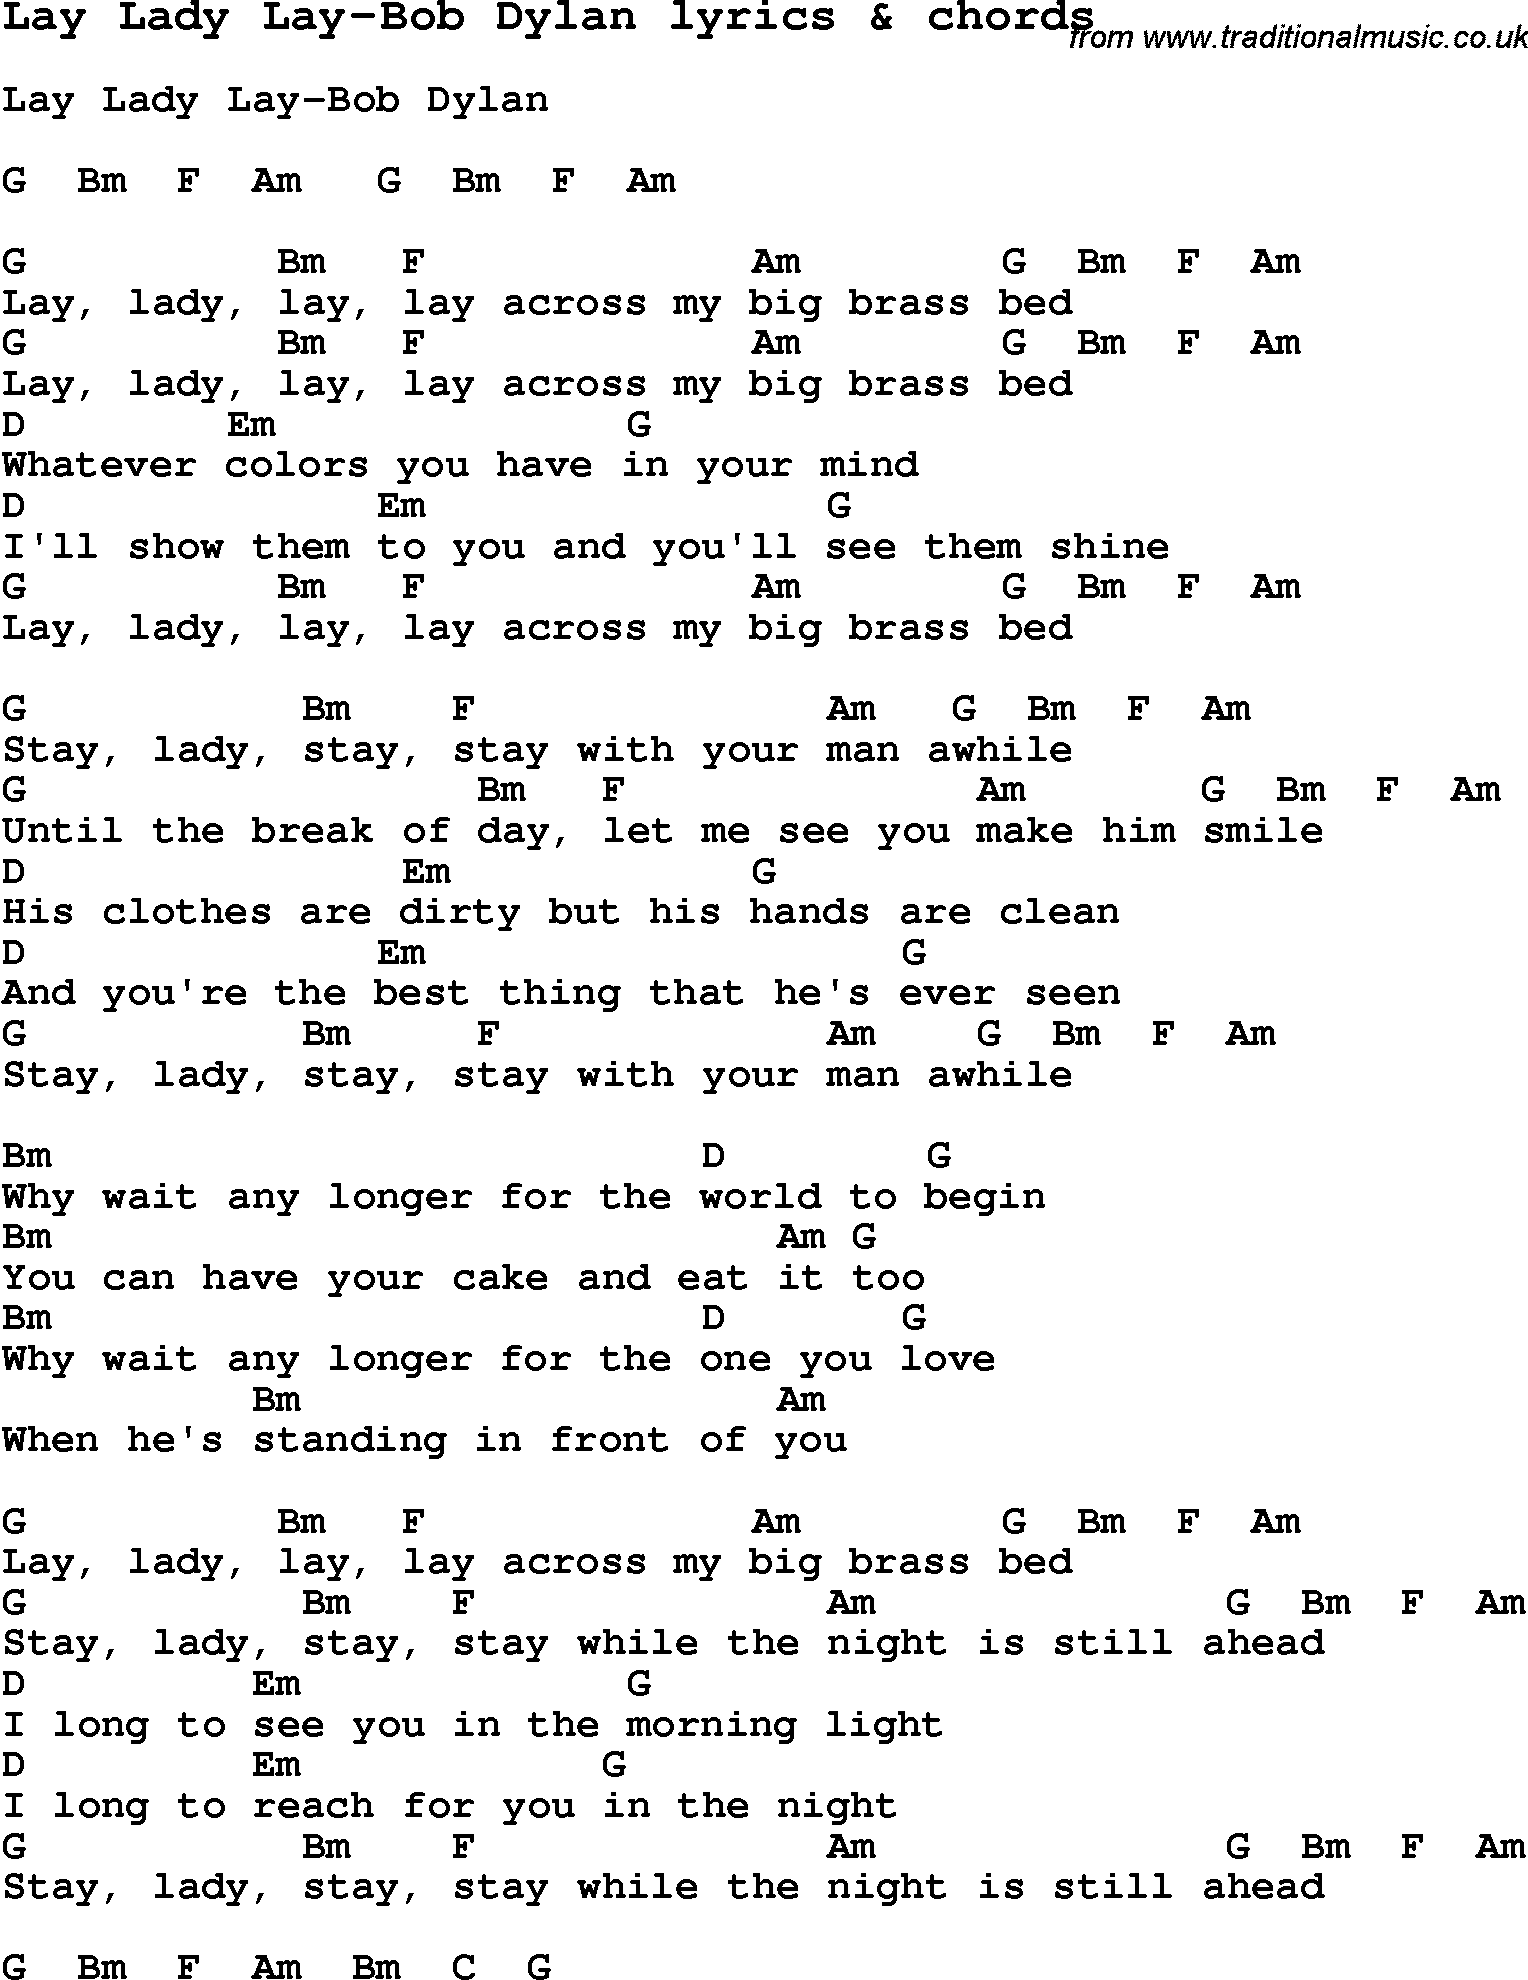 Lay Lady Lay Lyrics Love Lyrics For Lay Lady Lay Bob Dylan With